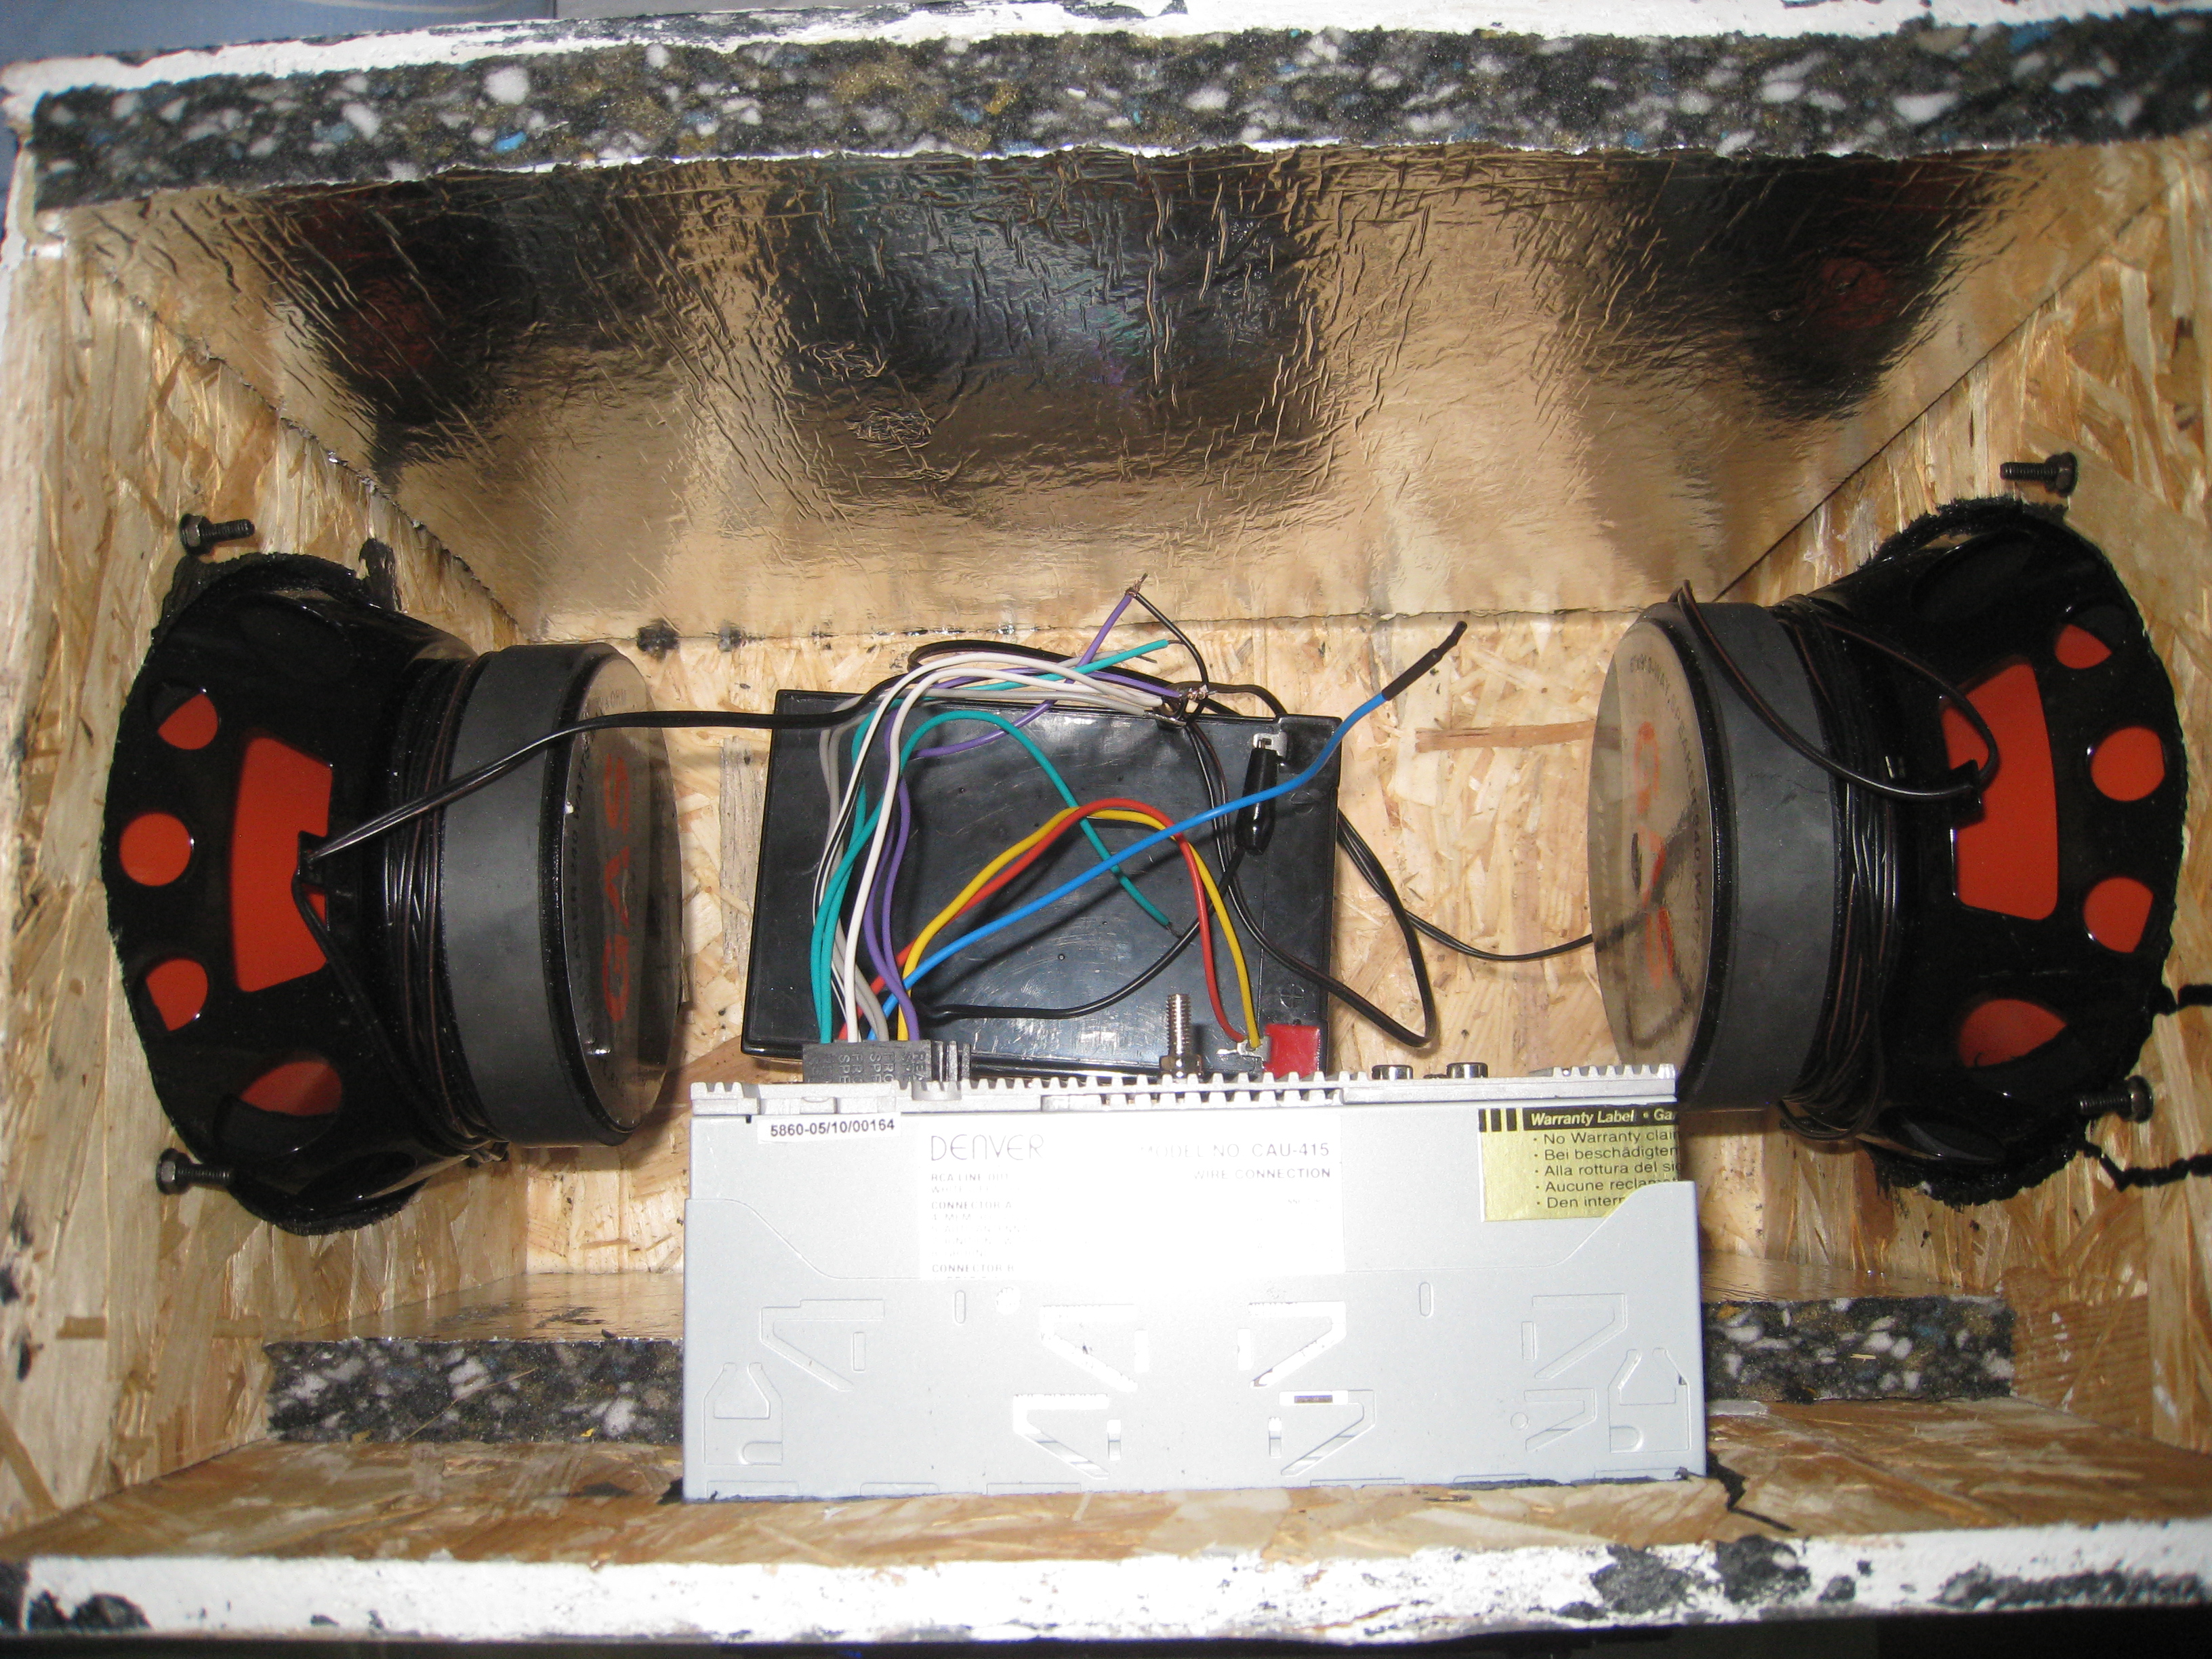 Interior picture of boombox